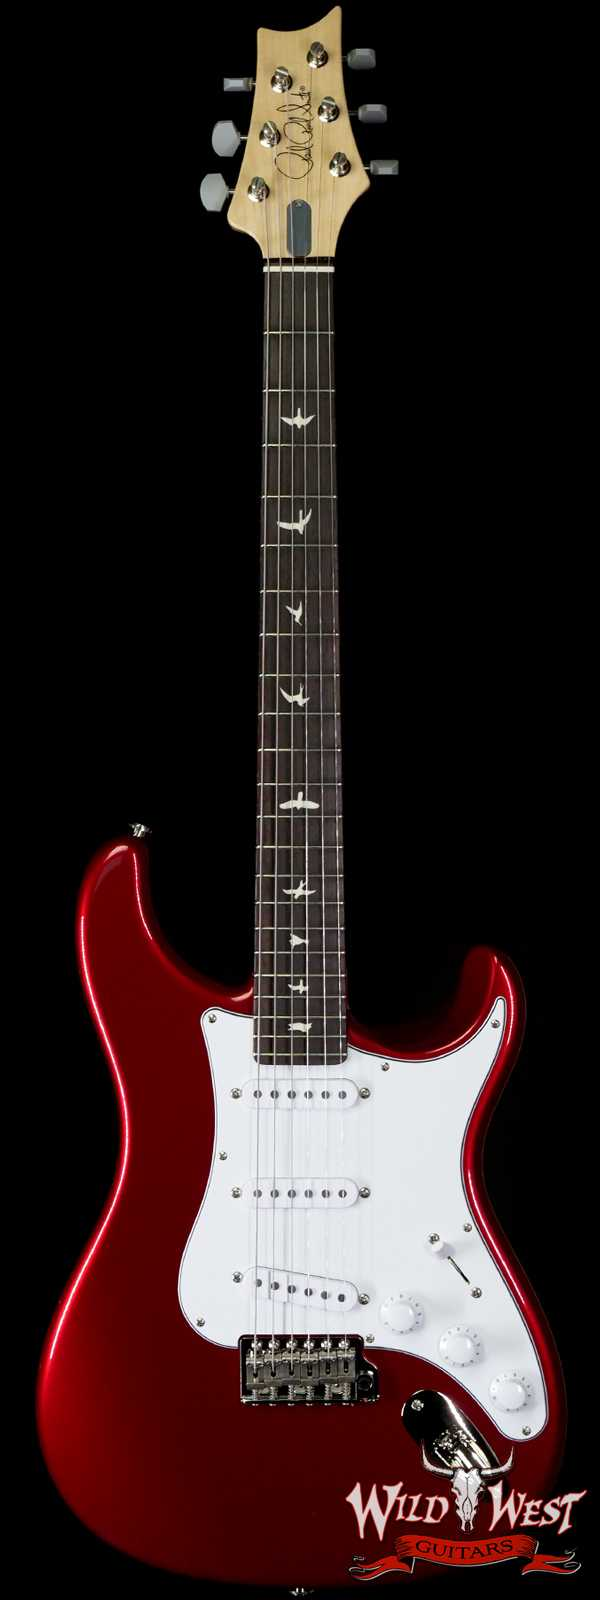 Paul Reed Smith PRS John Mayer Signature Model Silver Sky Rosewood Board Horizon (Red)